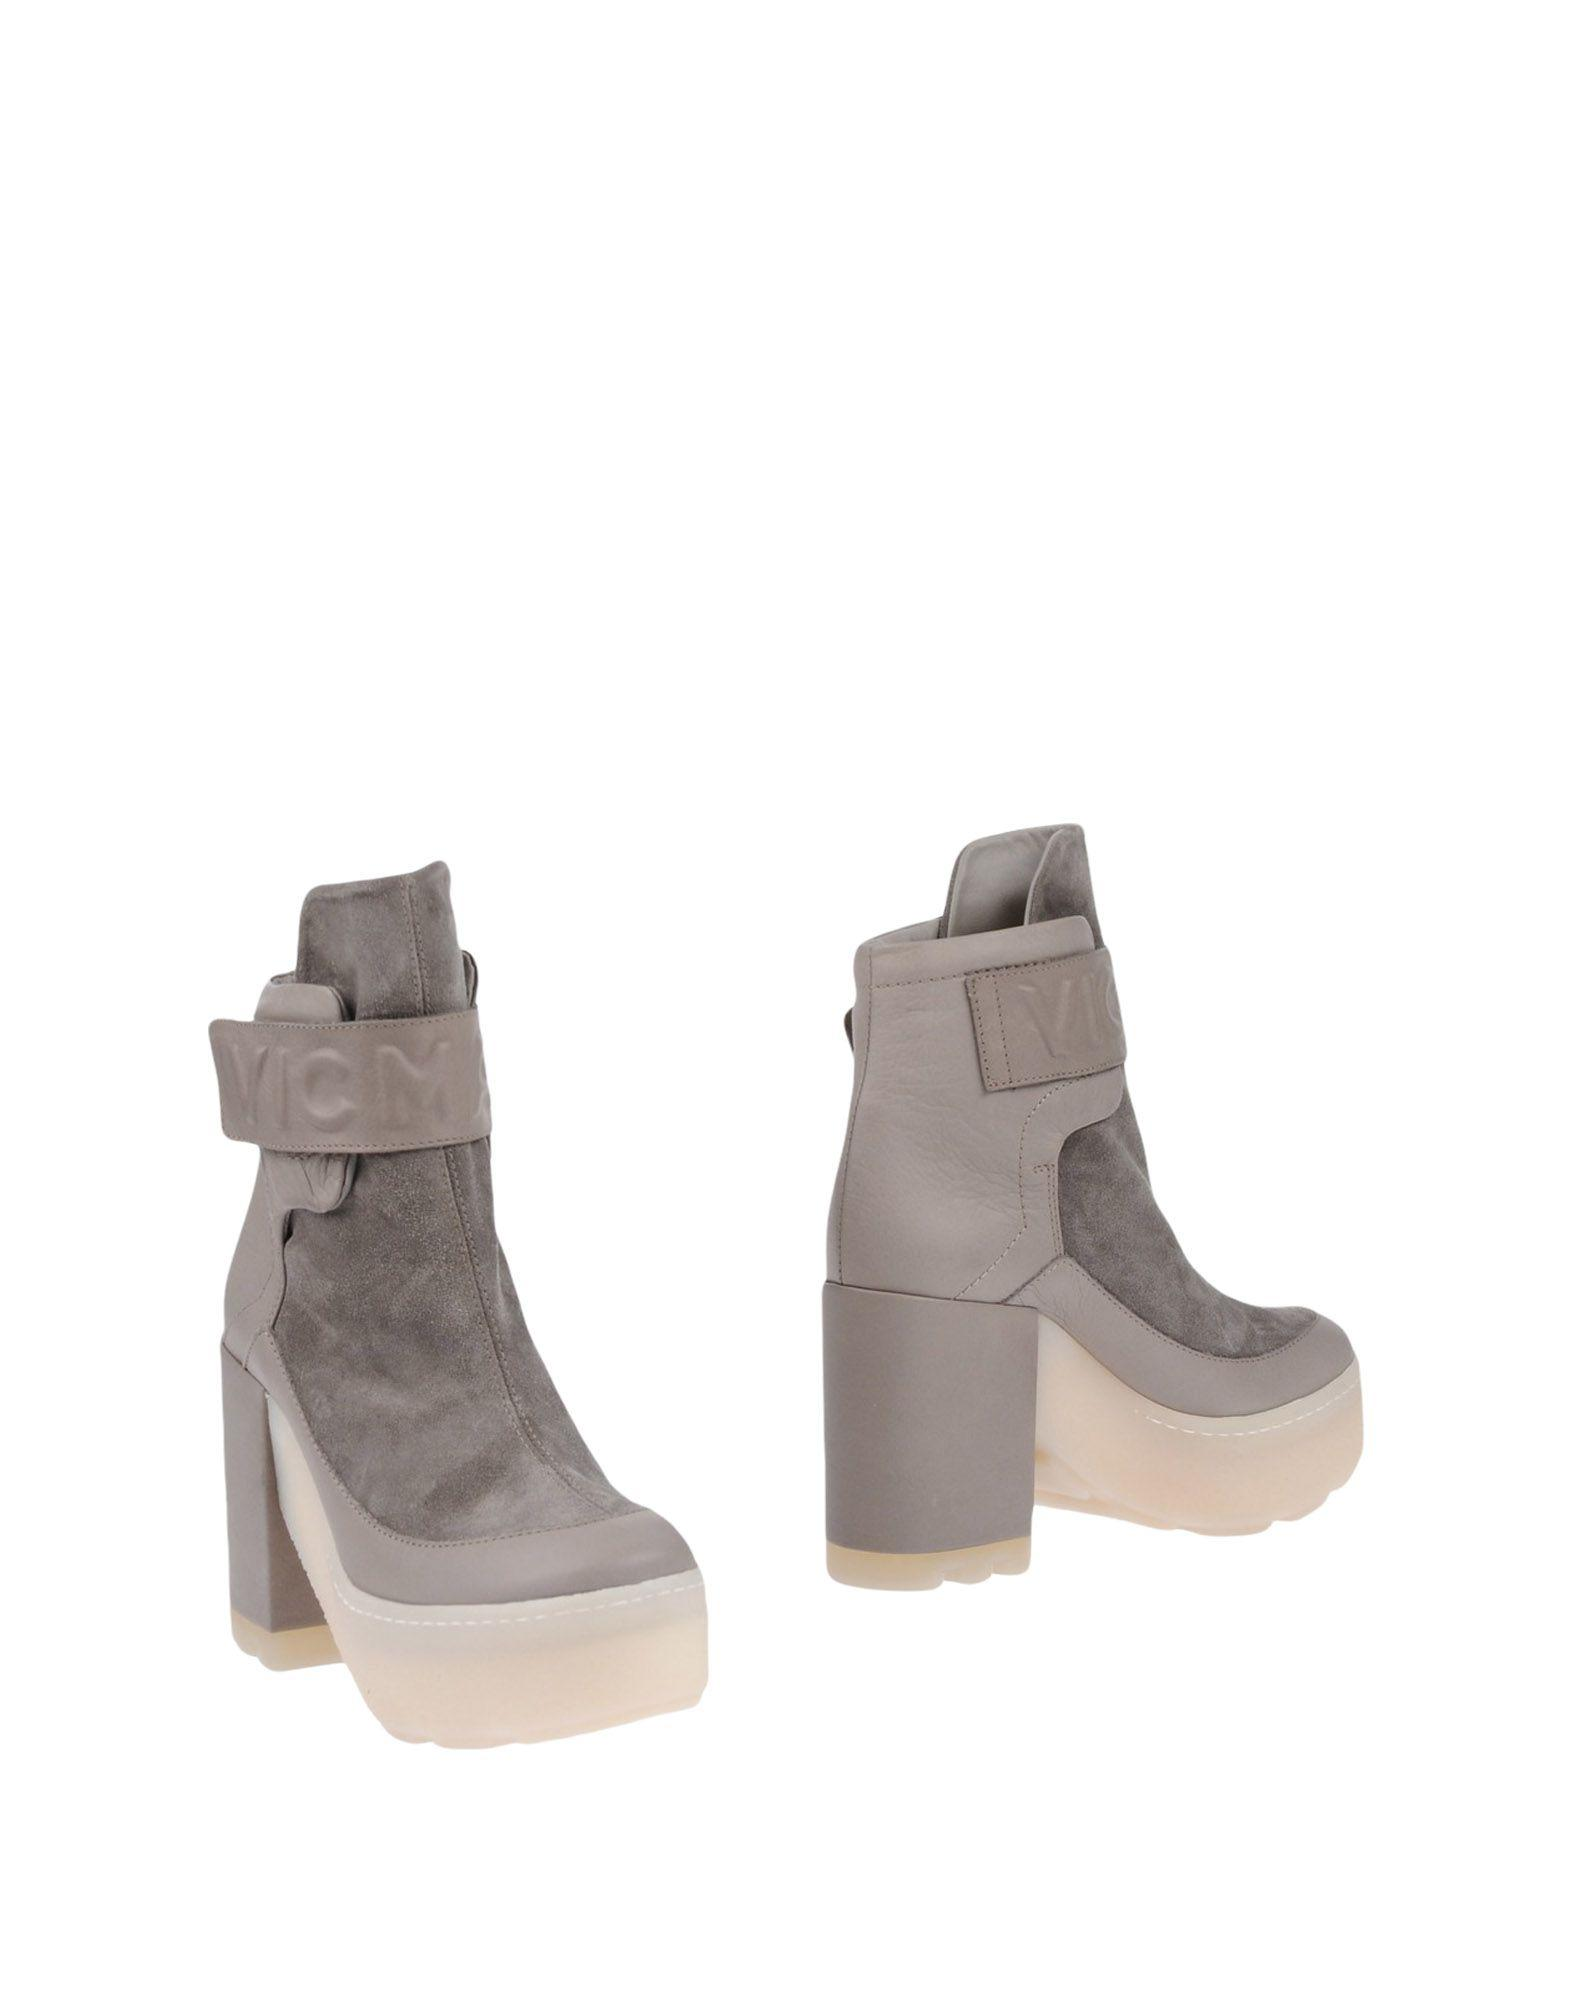 Vic Matie Ankle Boots In Grey